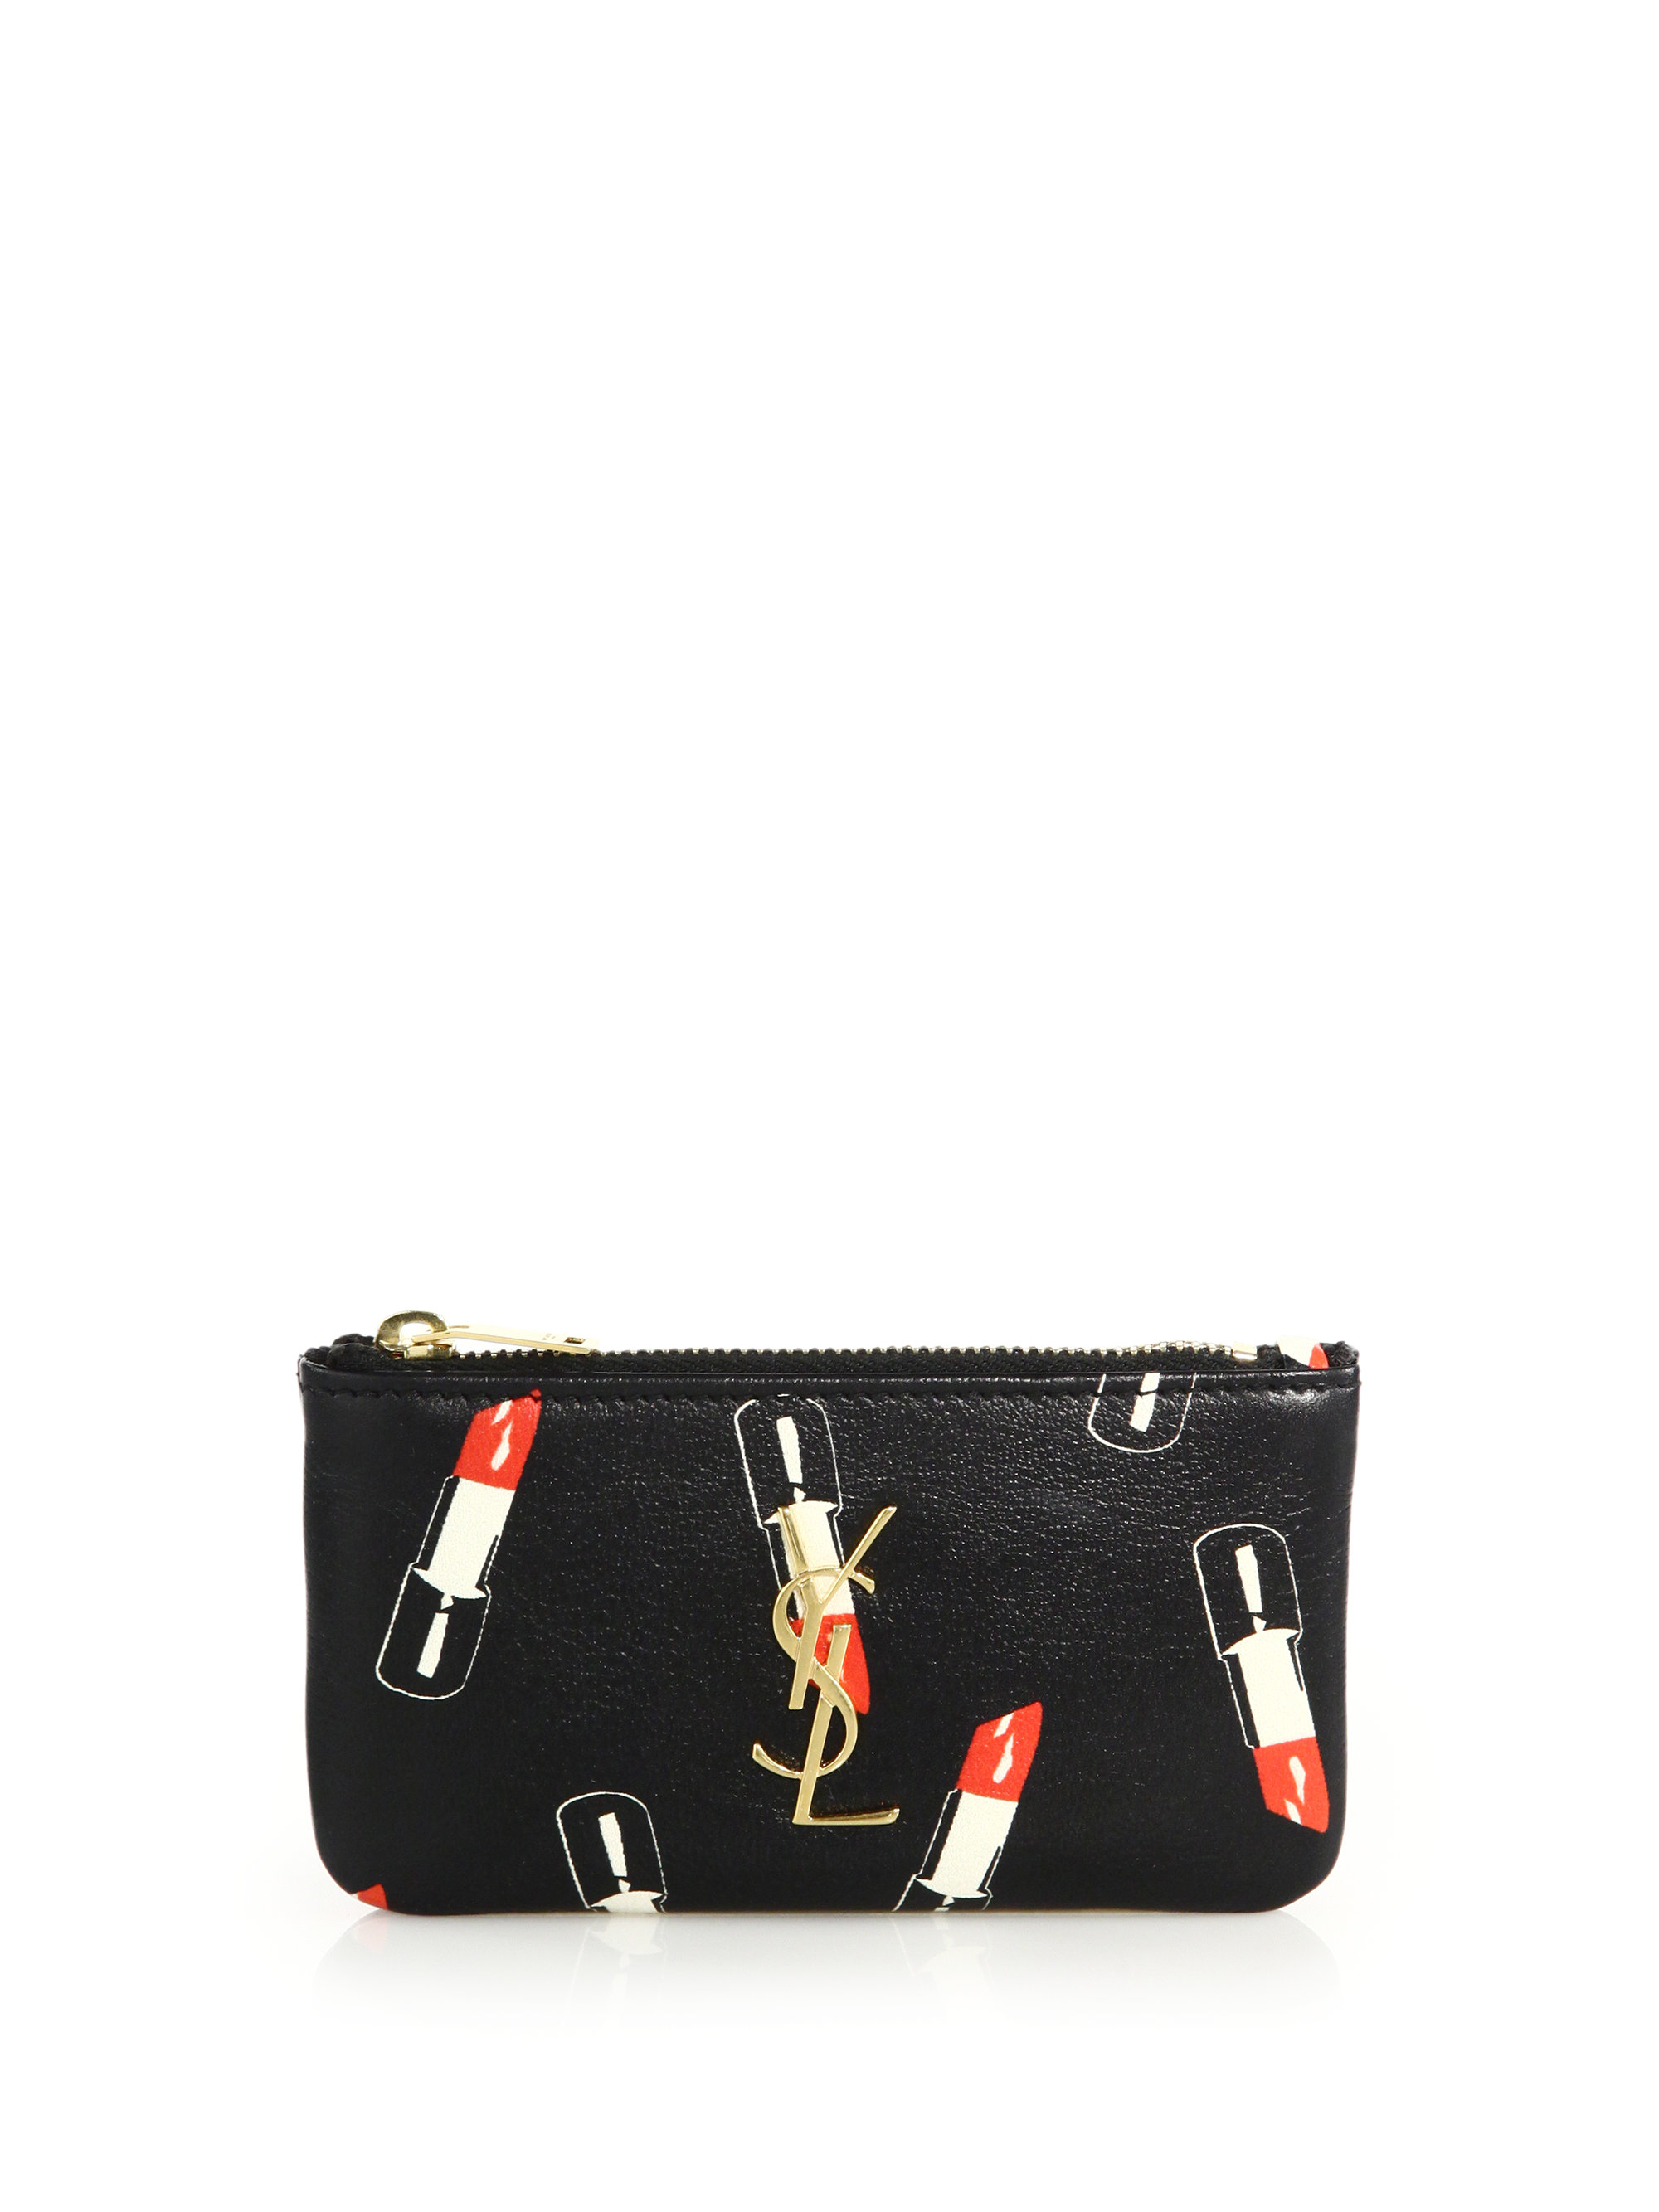 Monogram Saint Laurent Crossbody Phone Pouch In Lipstick Fuchsia Leather